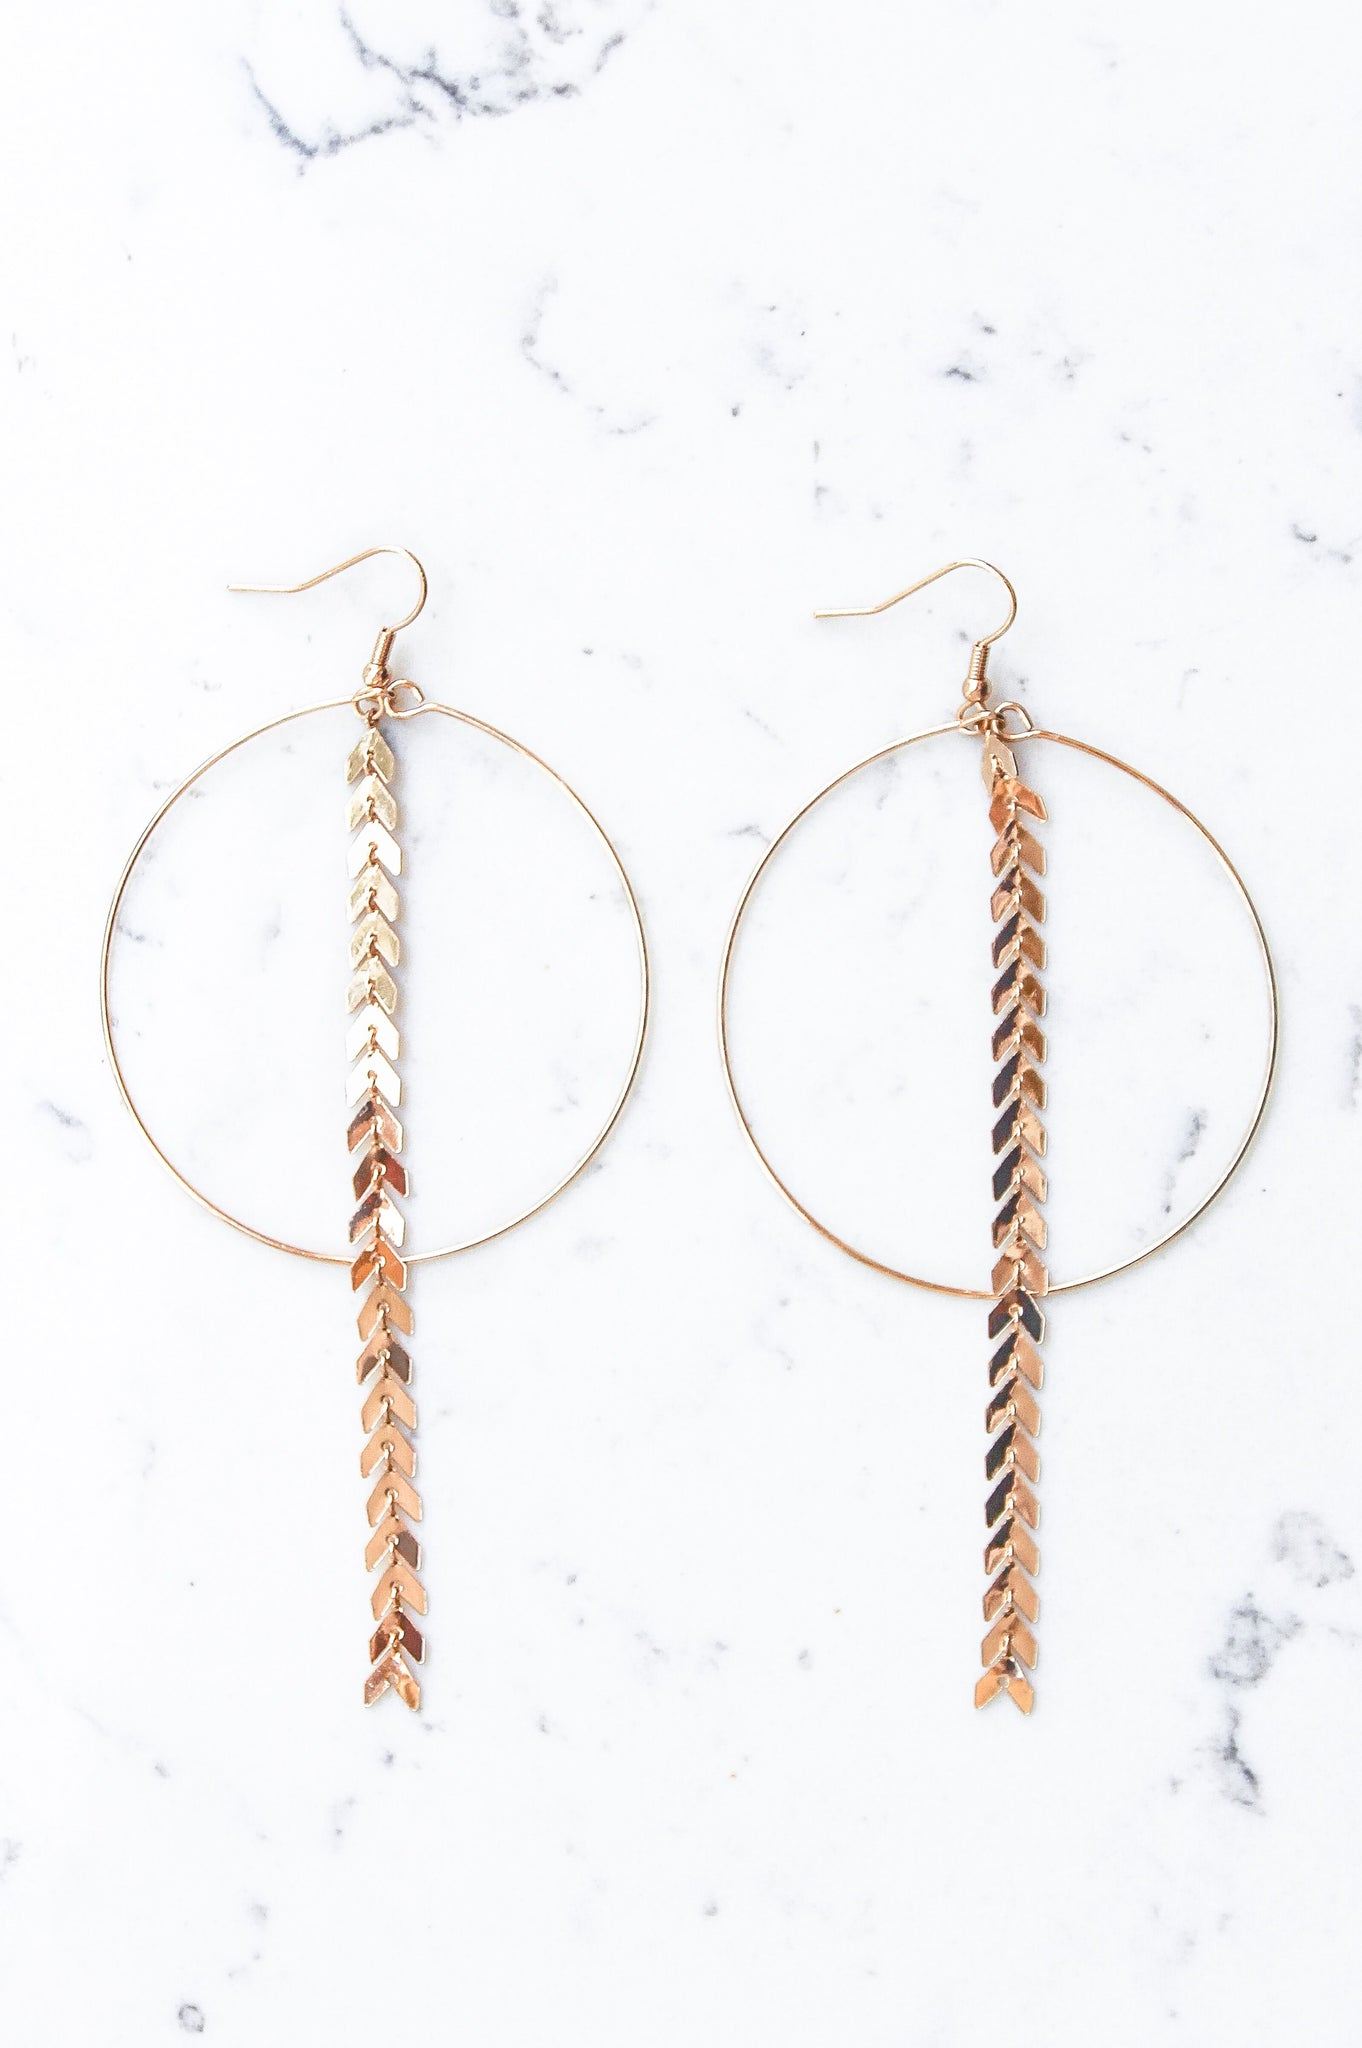 The Sabrina Hoop Earring